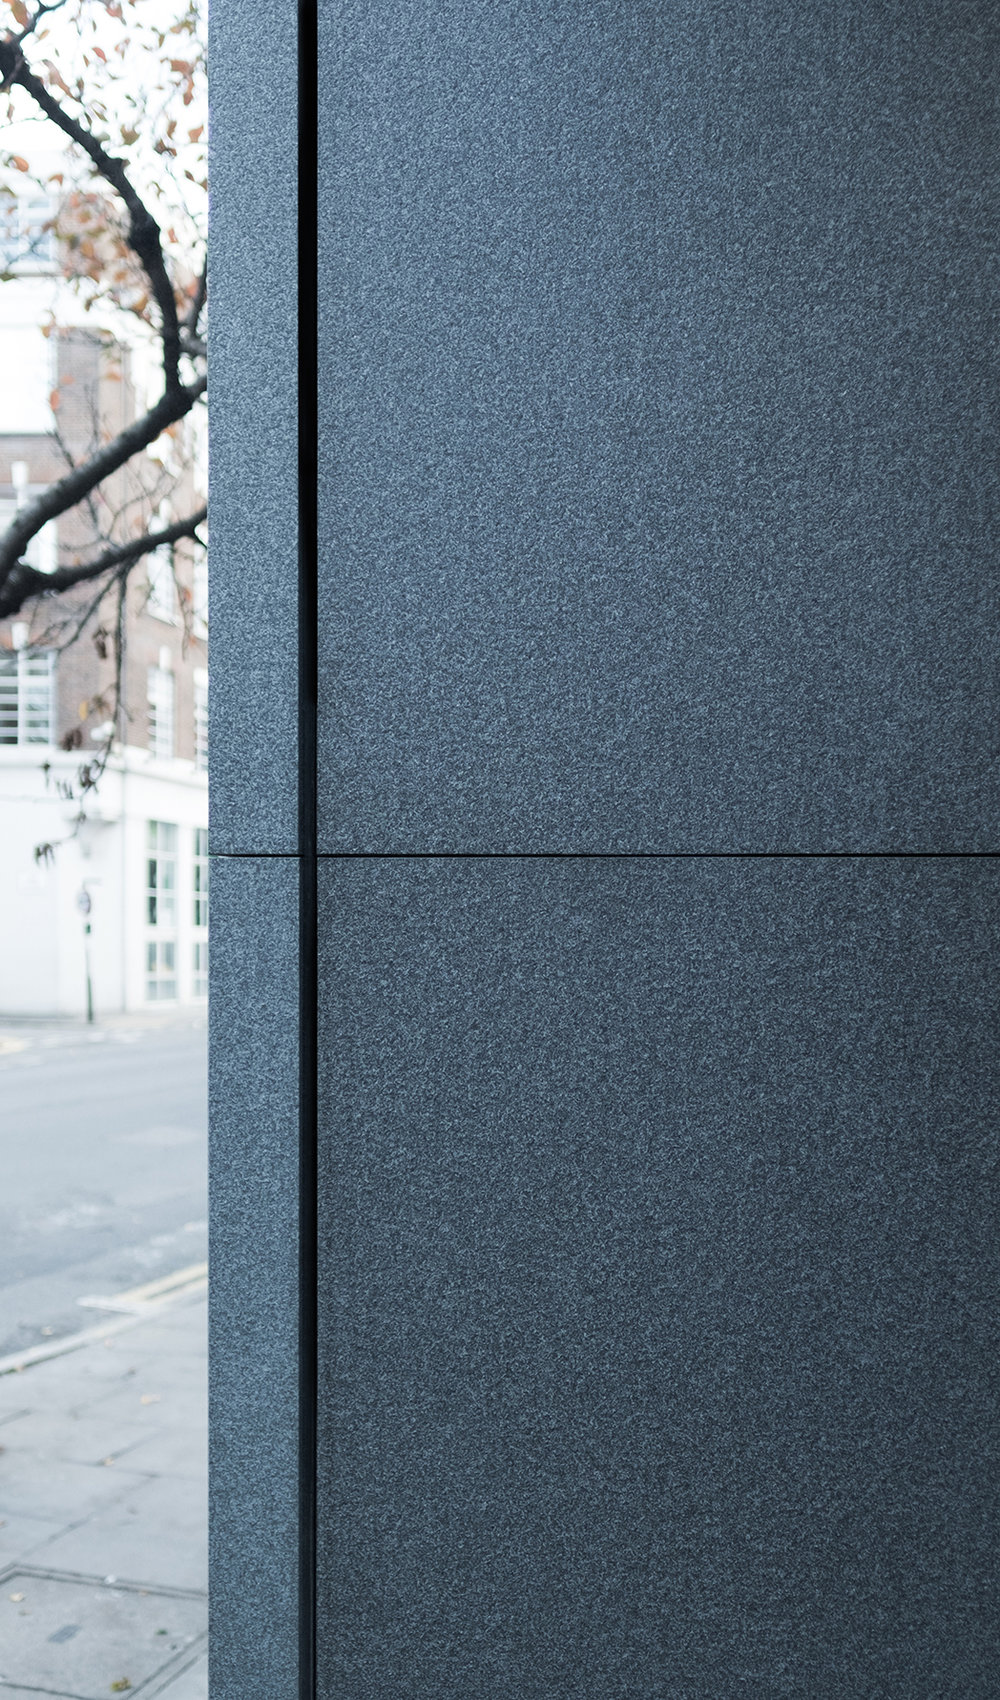 Goswell-Road-Clerkenwell-London-Office-Facade-Detail-Refurbishment-Granite-Grey.jpg